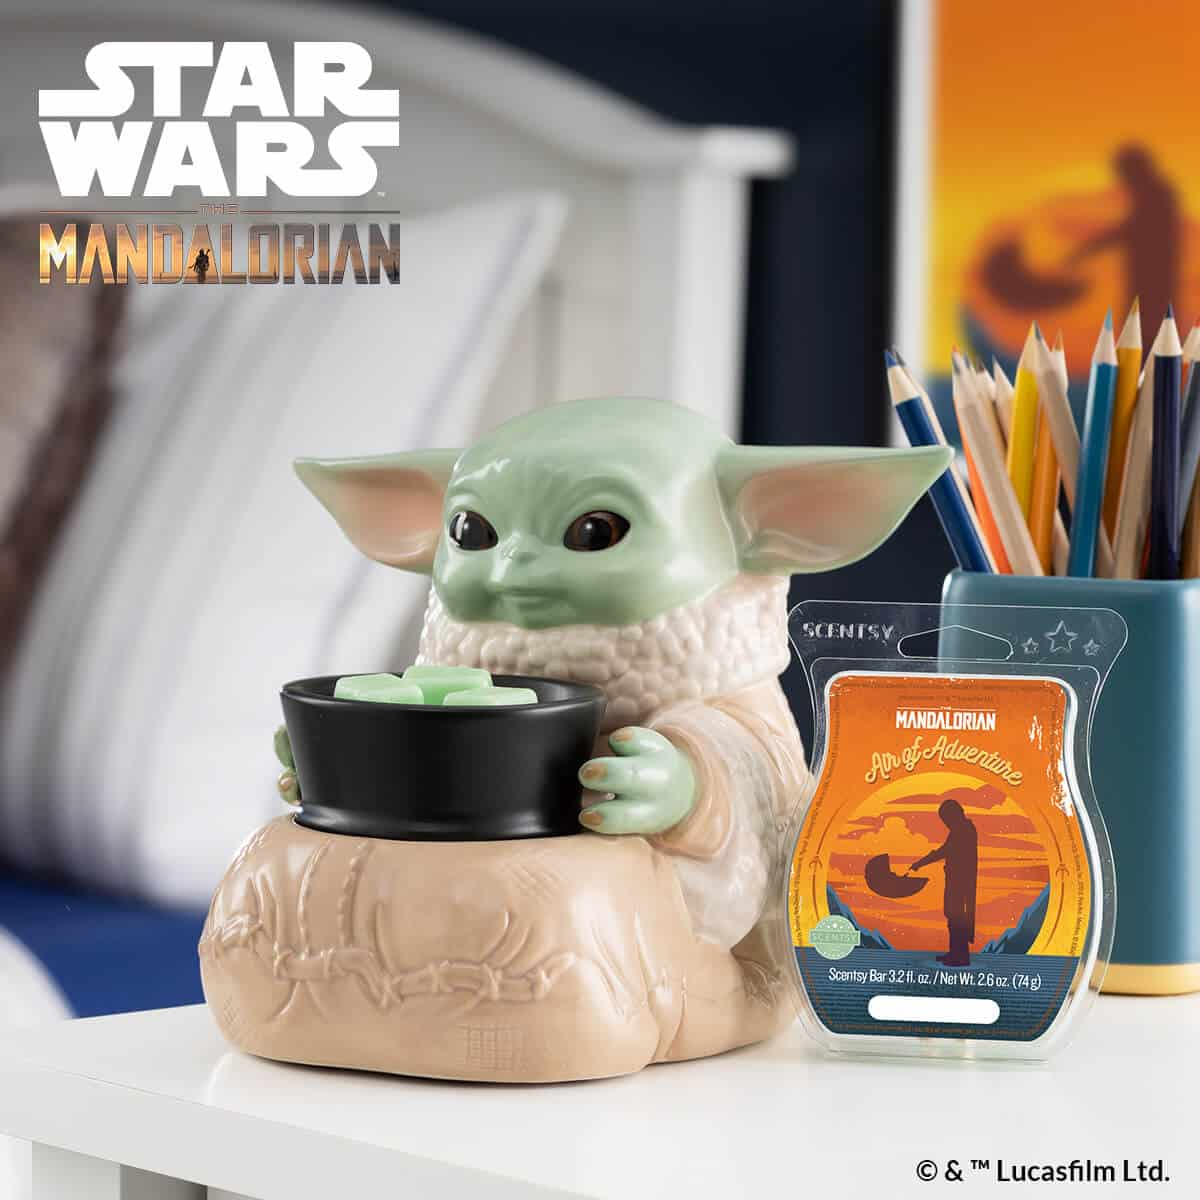 NEW! Baby Yoda The Child Scentsy Warmer | Star Wars The Mandalorian | Shop 12/7